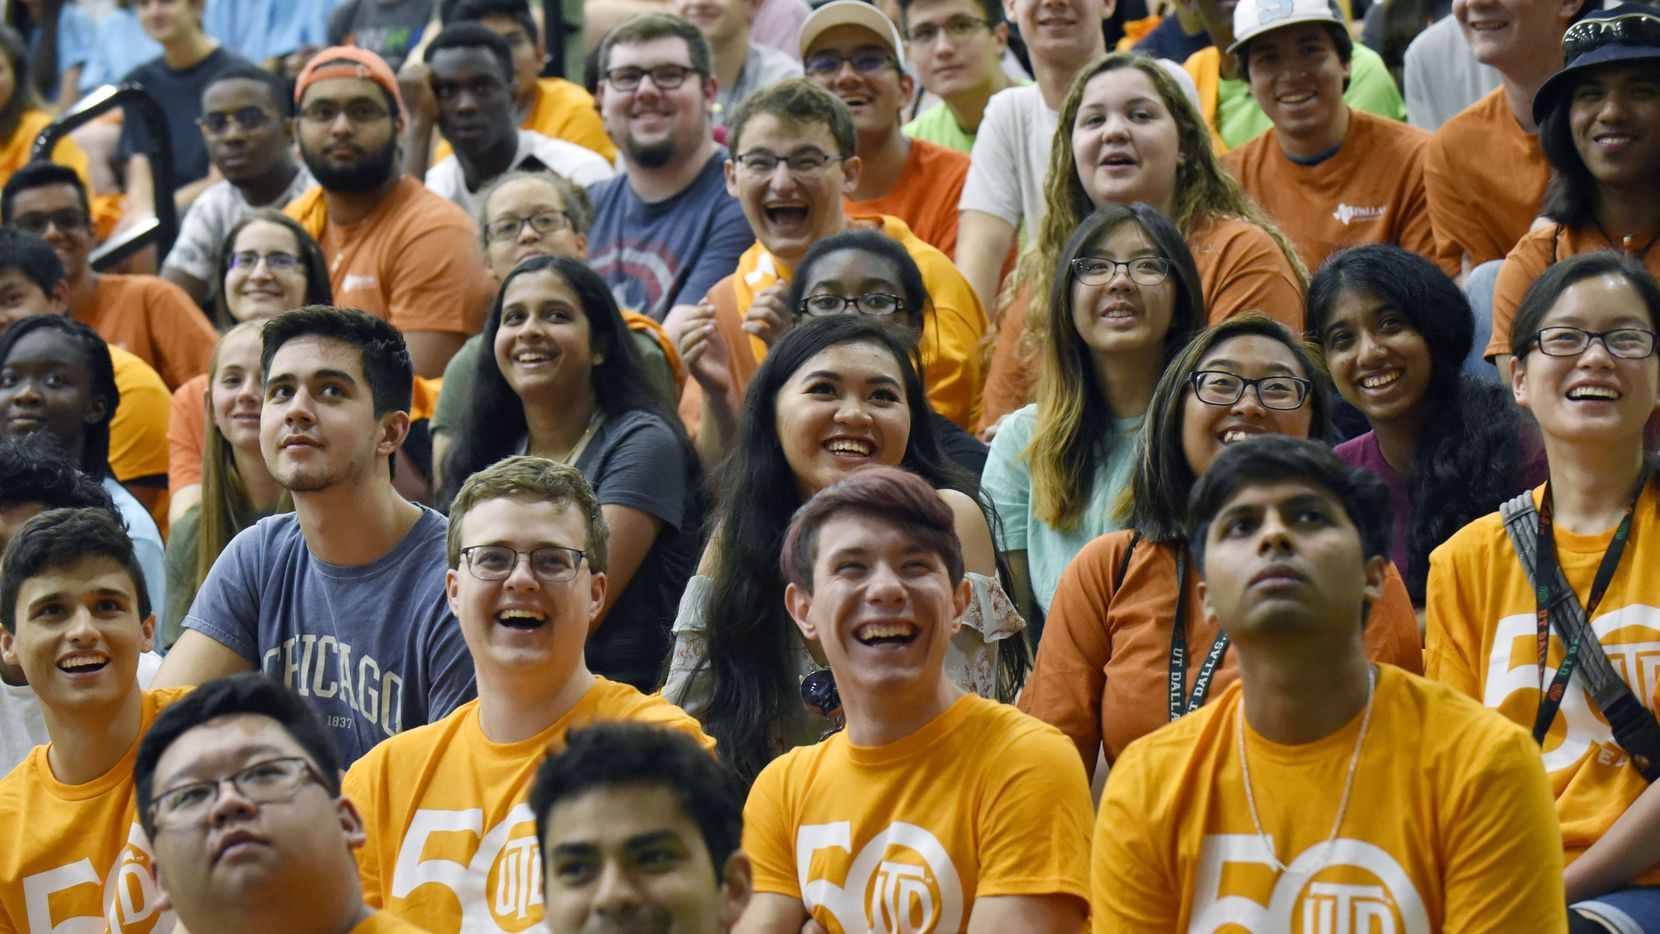 New students react with laughter as they watch a video promoting UTD during a new student convocation celebrating the University of Texas at Dallas' 50th anniversary, Sunday Aug. 18, 2019 in Richardson.